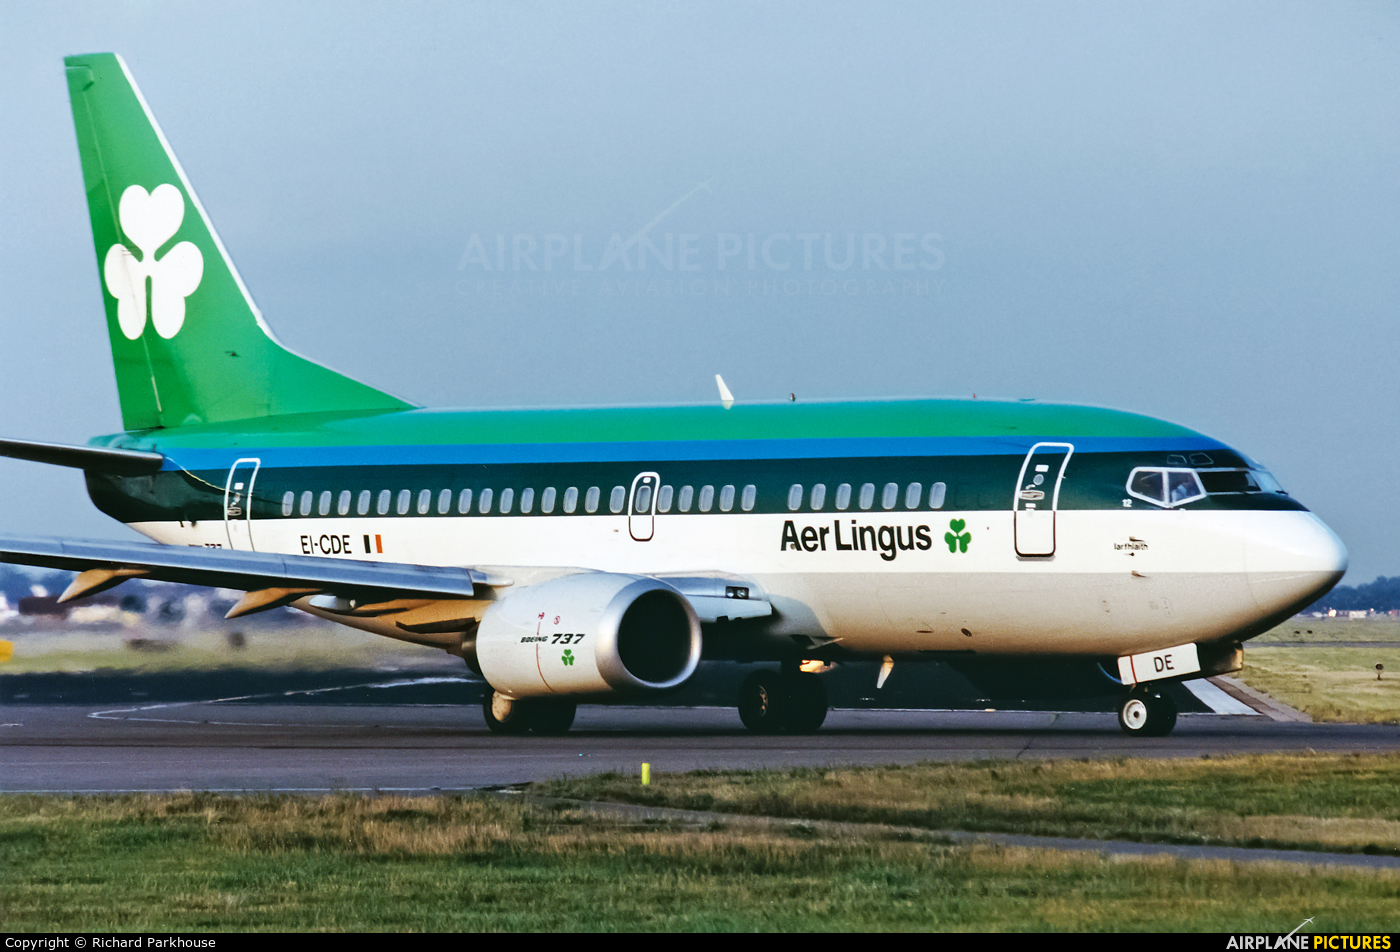 Aer Lingus EI-CDE aircraft at London - Gatwick